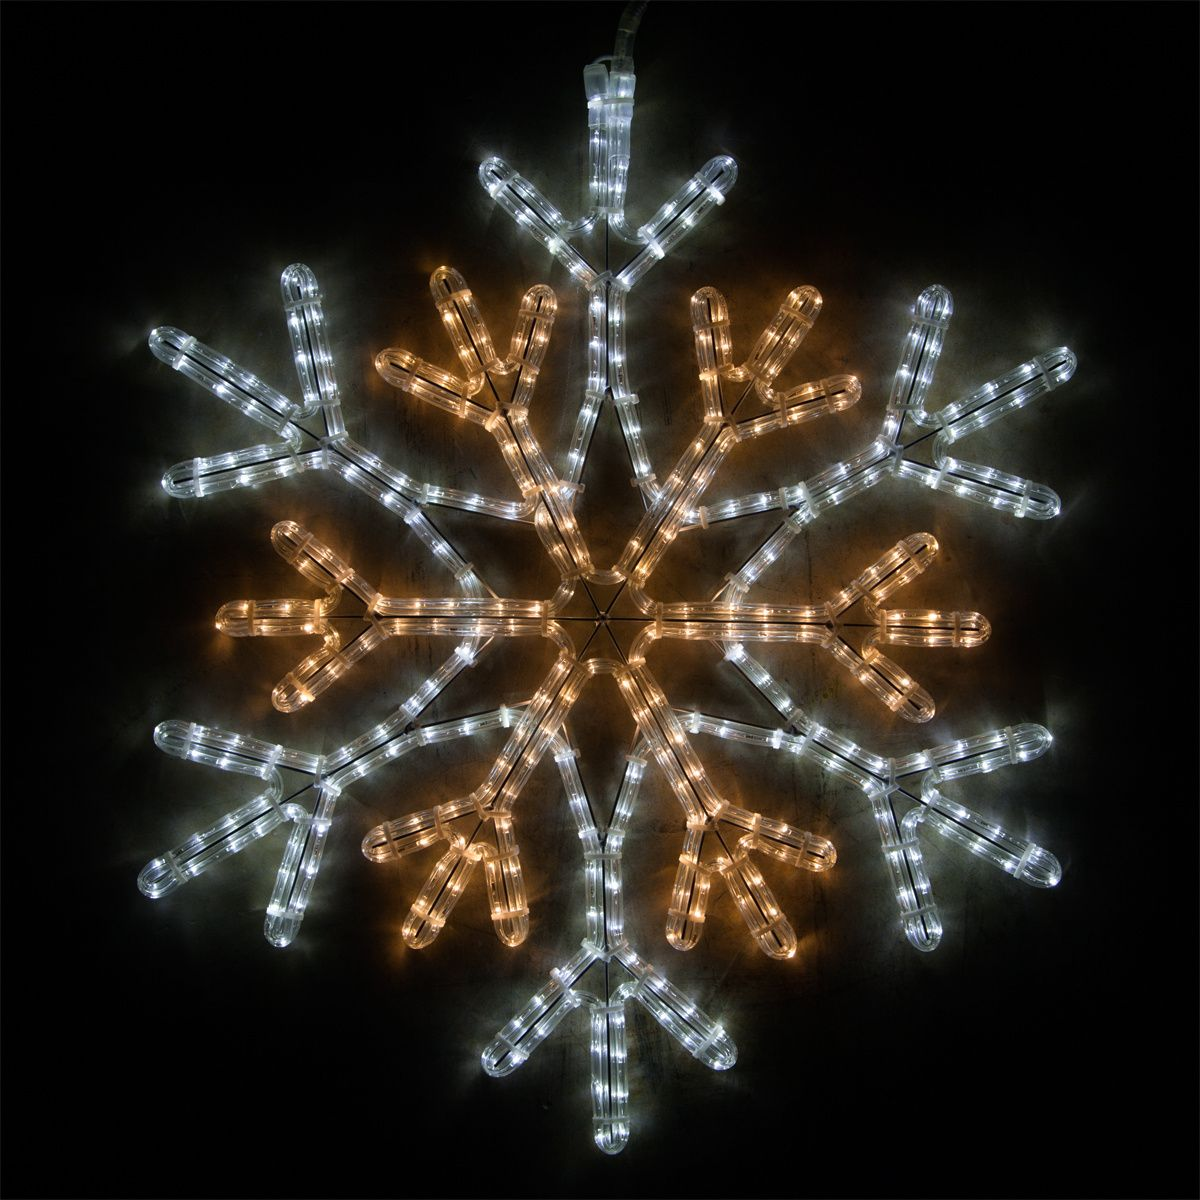 Led 36 Point Star Center Snowflake Cool White And Warm White Lights Christmas Lights Etc Snowflake Lights White Christmas Lights Outdoor Christmas Decorations